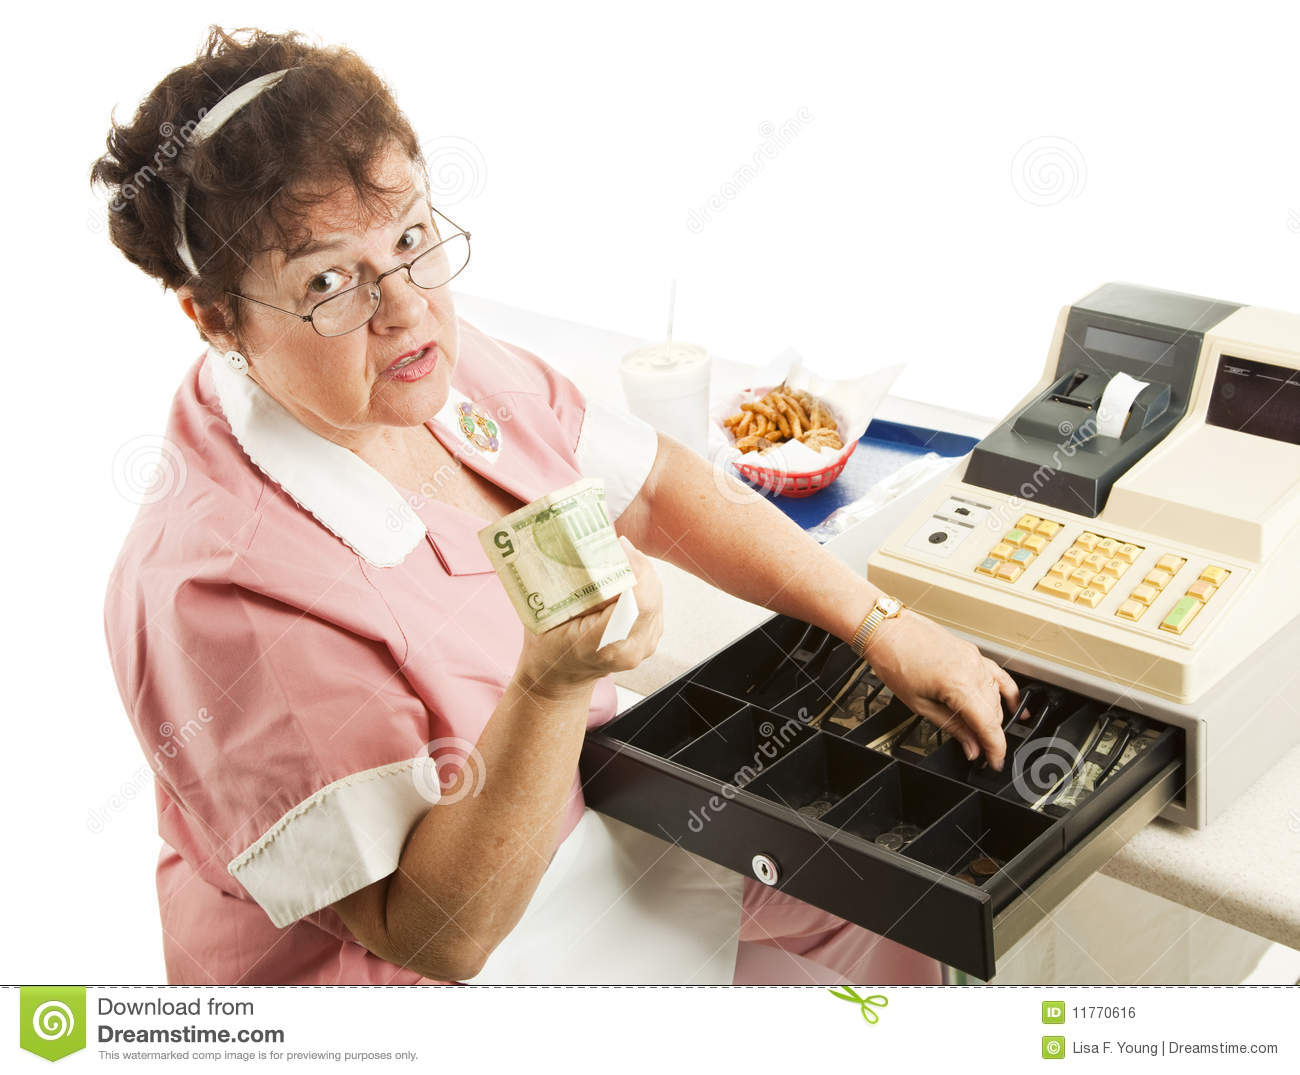 Cashier - Heres Your Change Royalty Free Stock Image - Image: 11770616